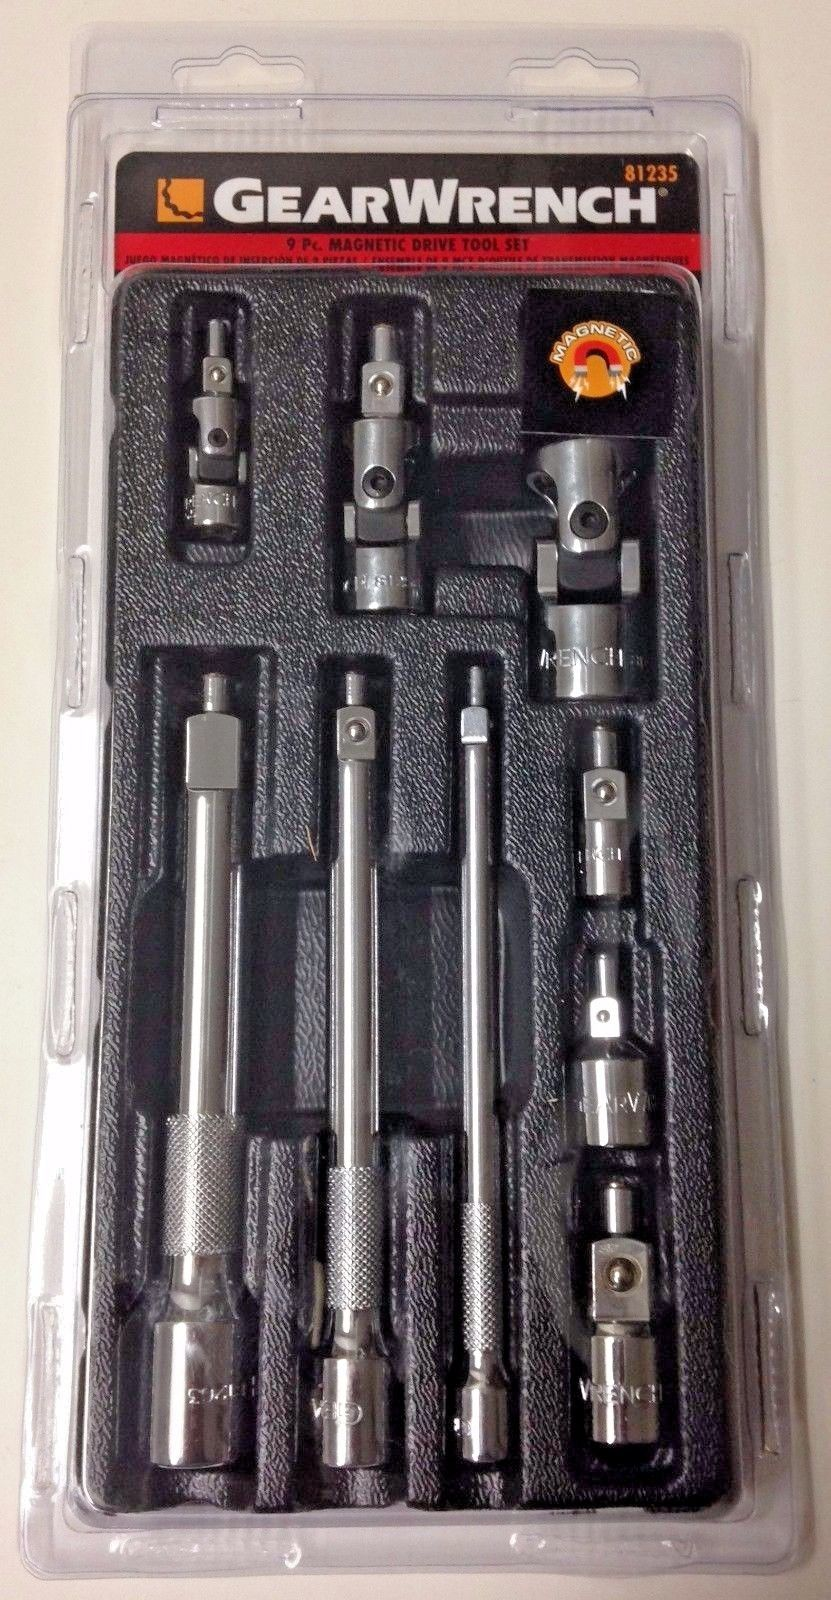 Gearwrench 81235 9 Piece Magnetic Drive Tool Set